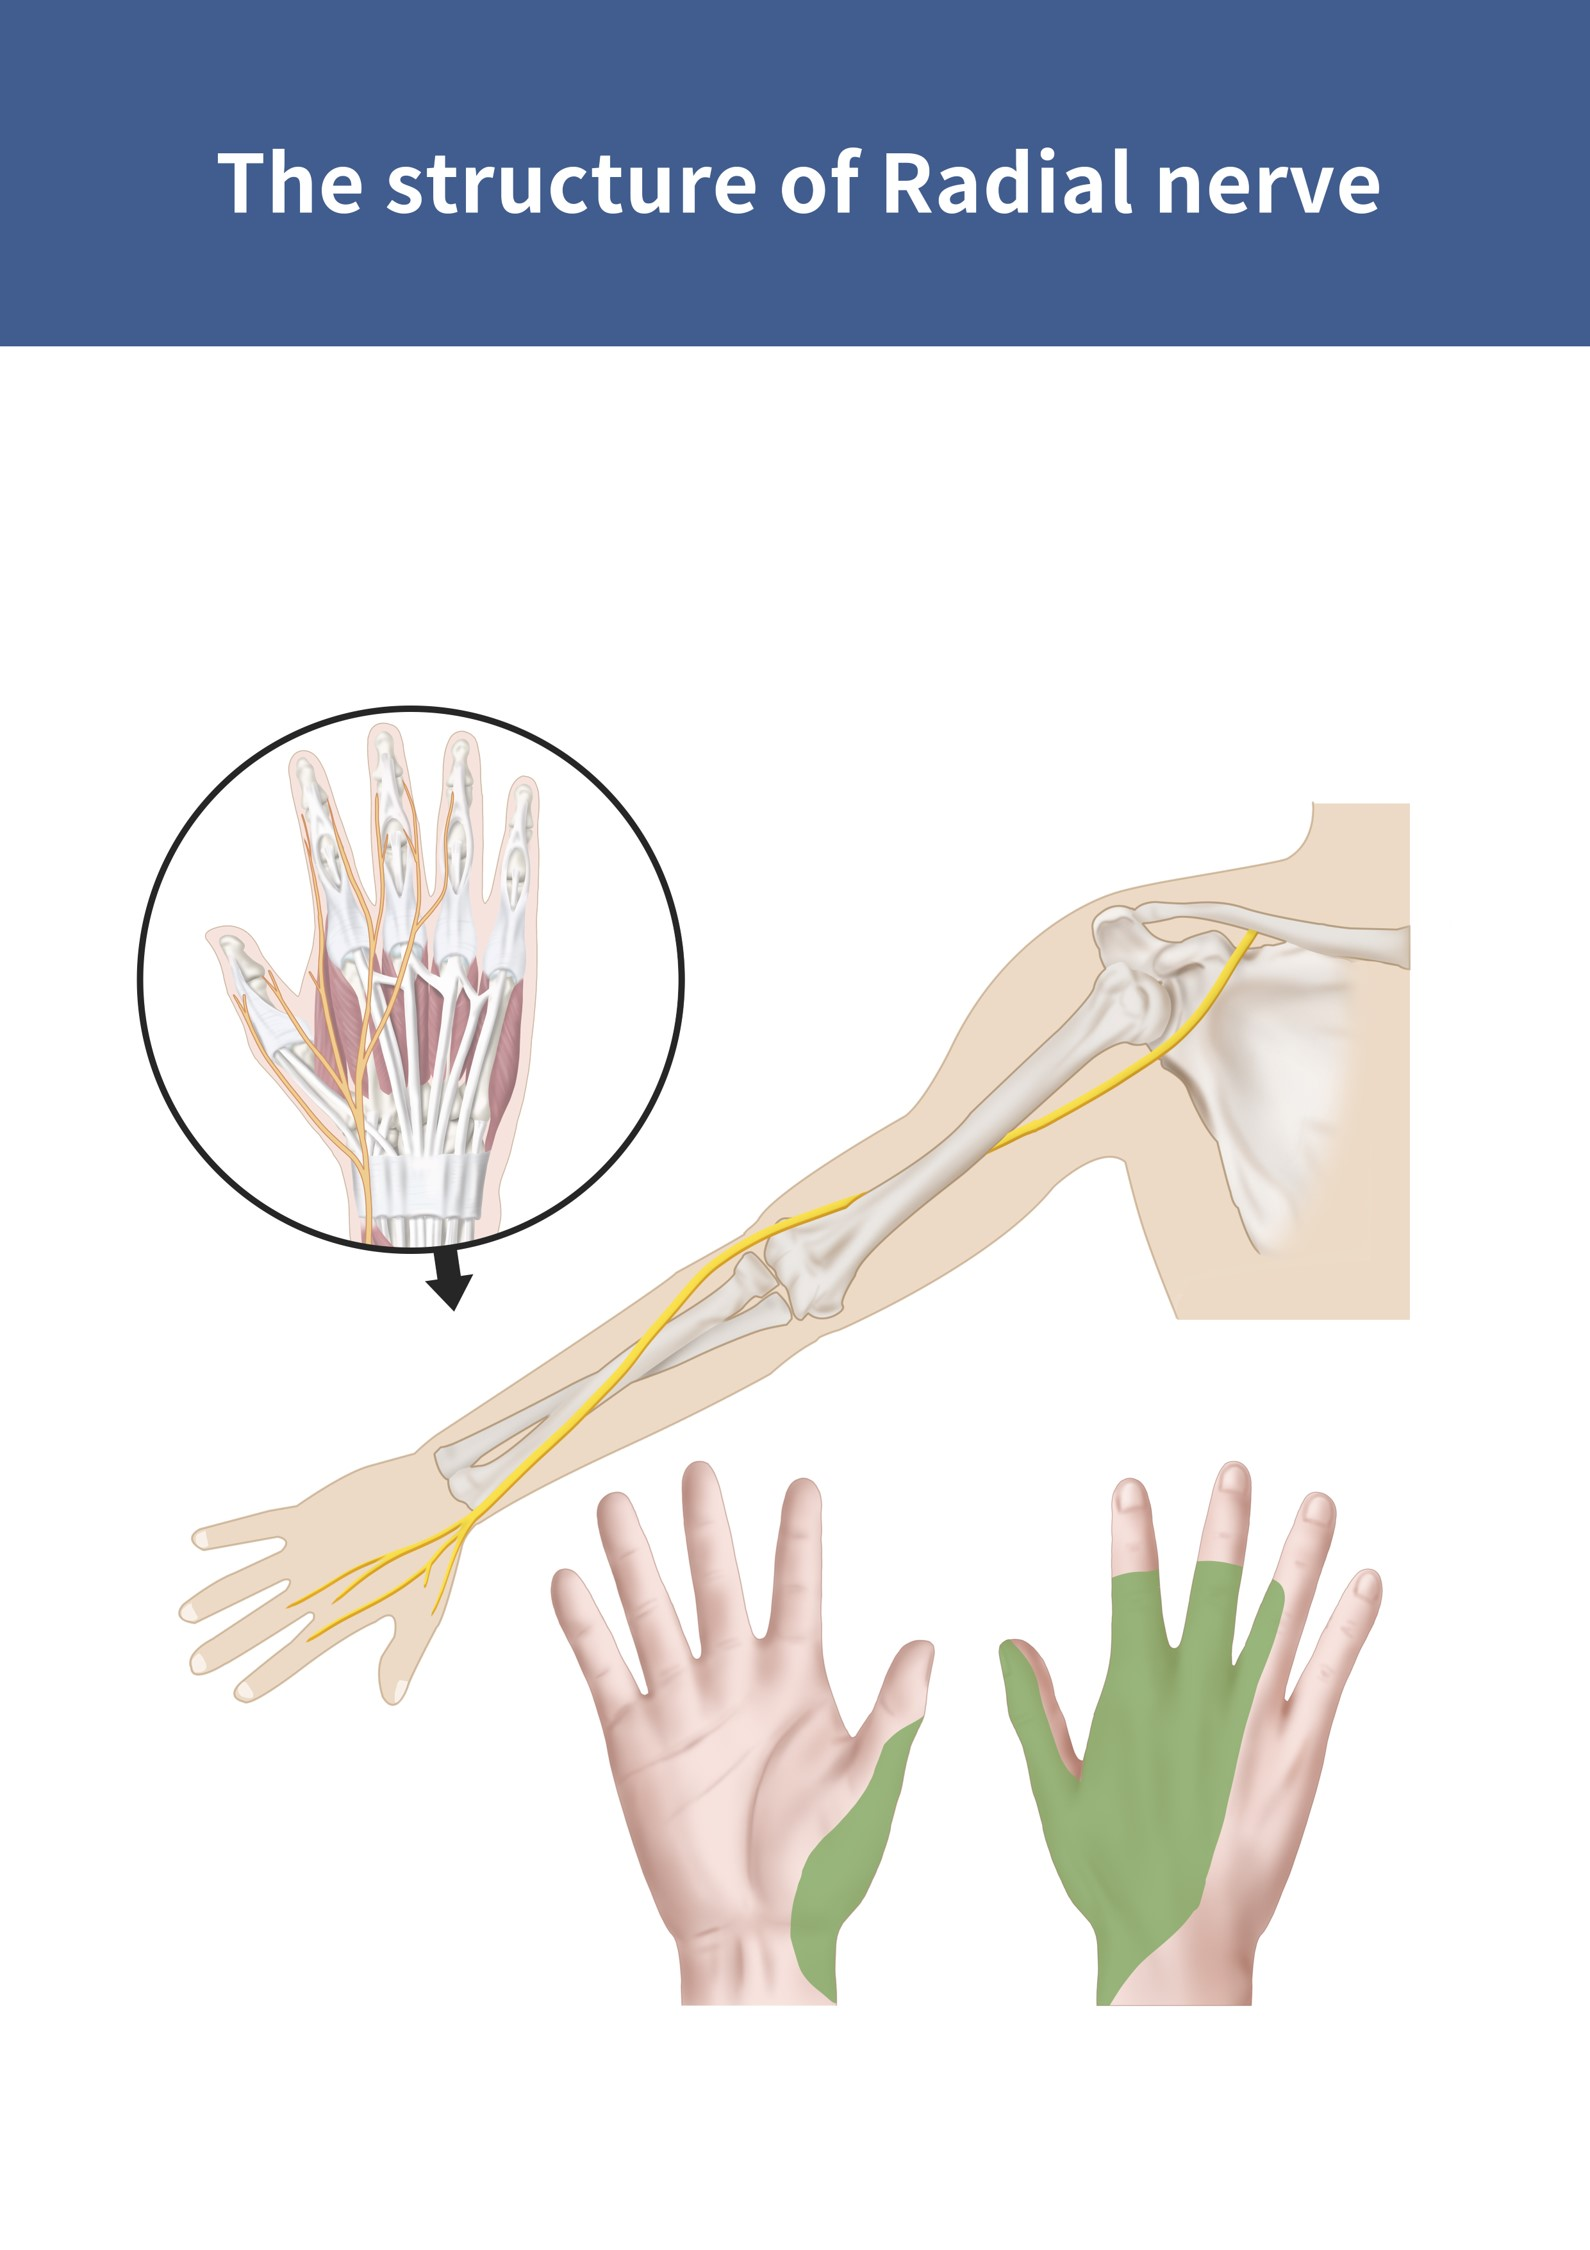 The structure of Radial nerve